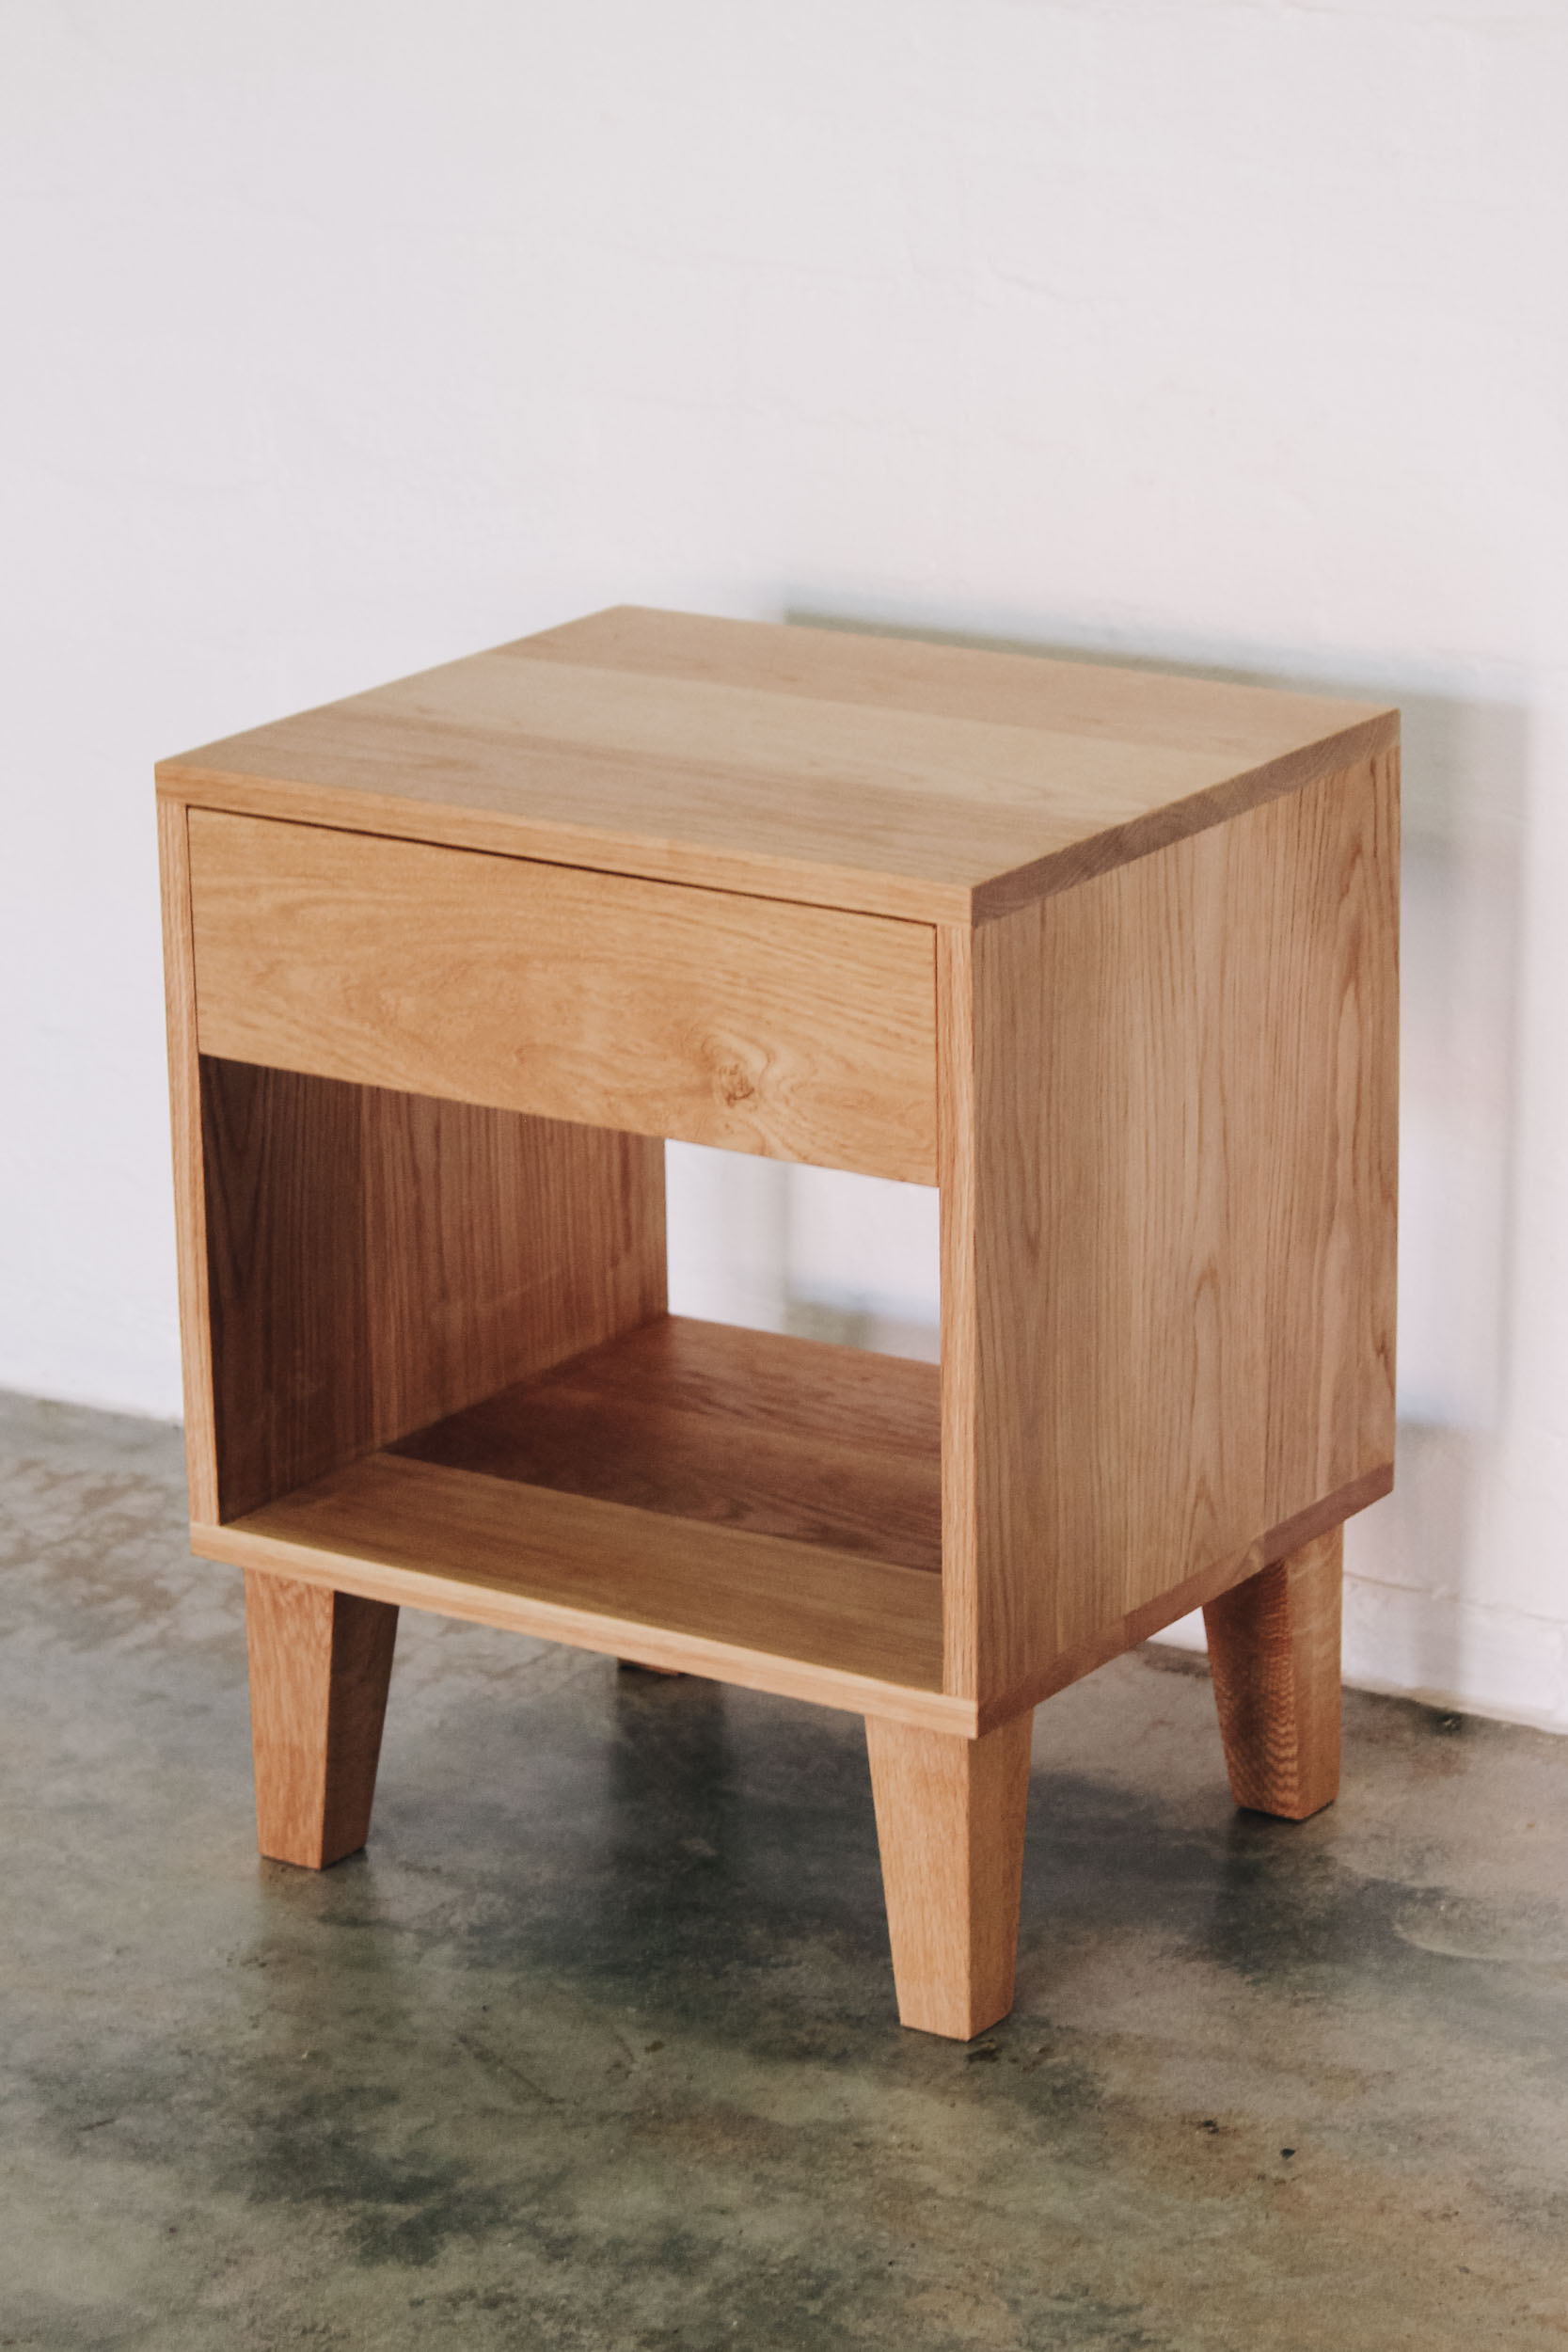 Al and Imo Handmade - American Oak Custom Bedside Tables-2.jpg